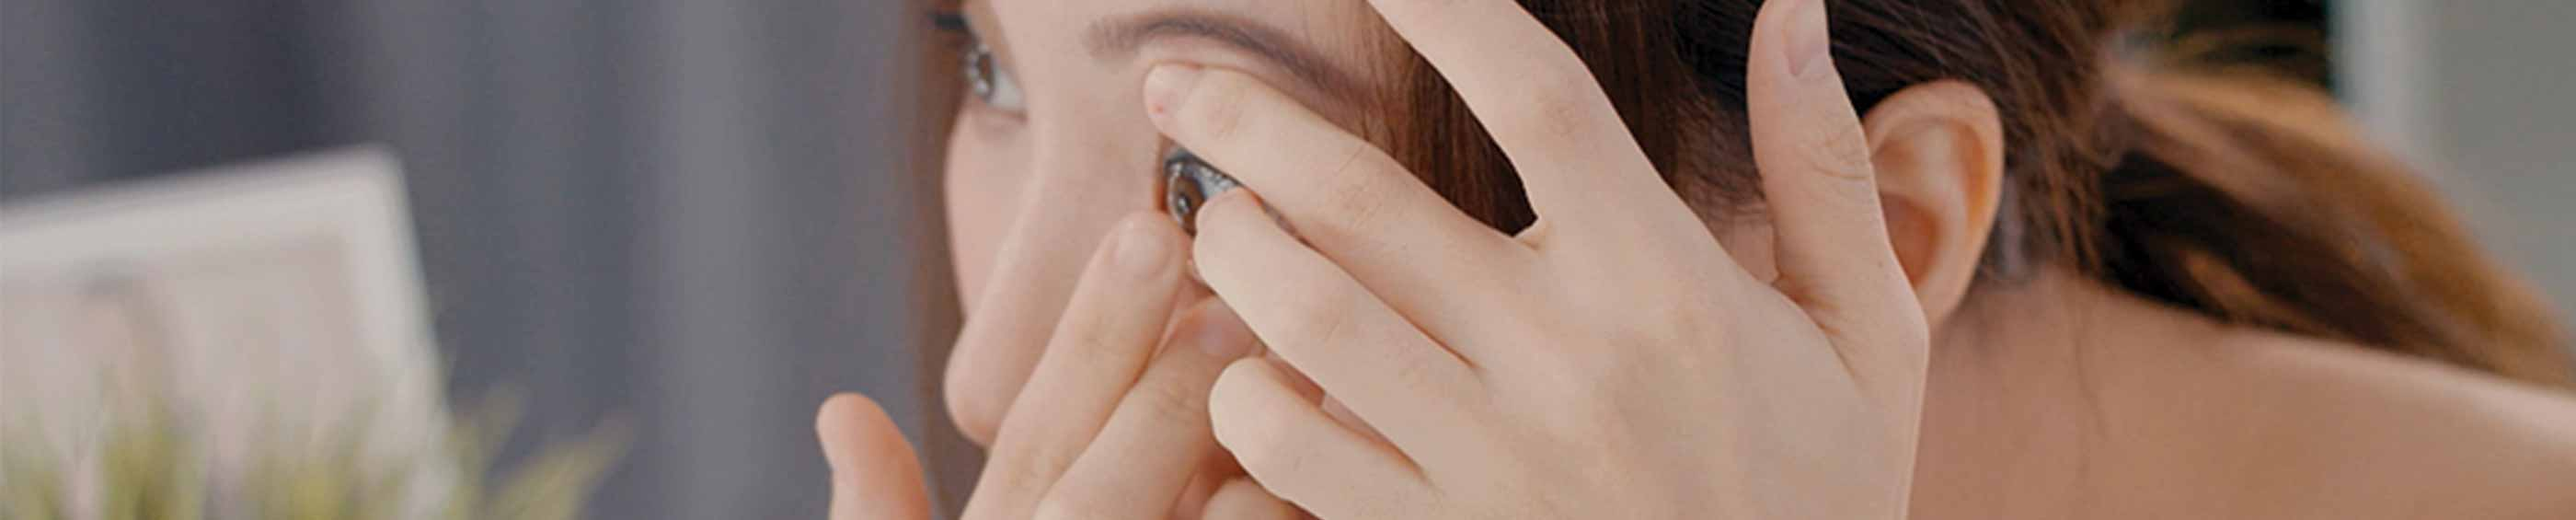 Young woman putting on ACUVUE contact lenses, Malaysia